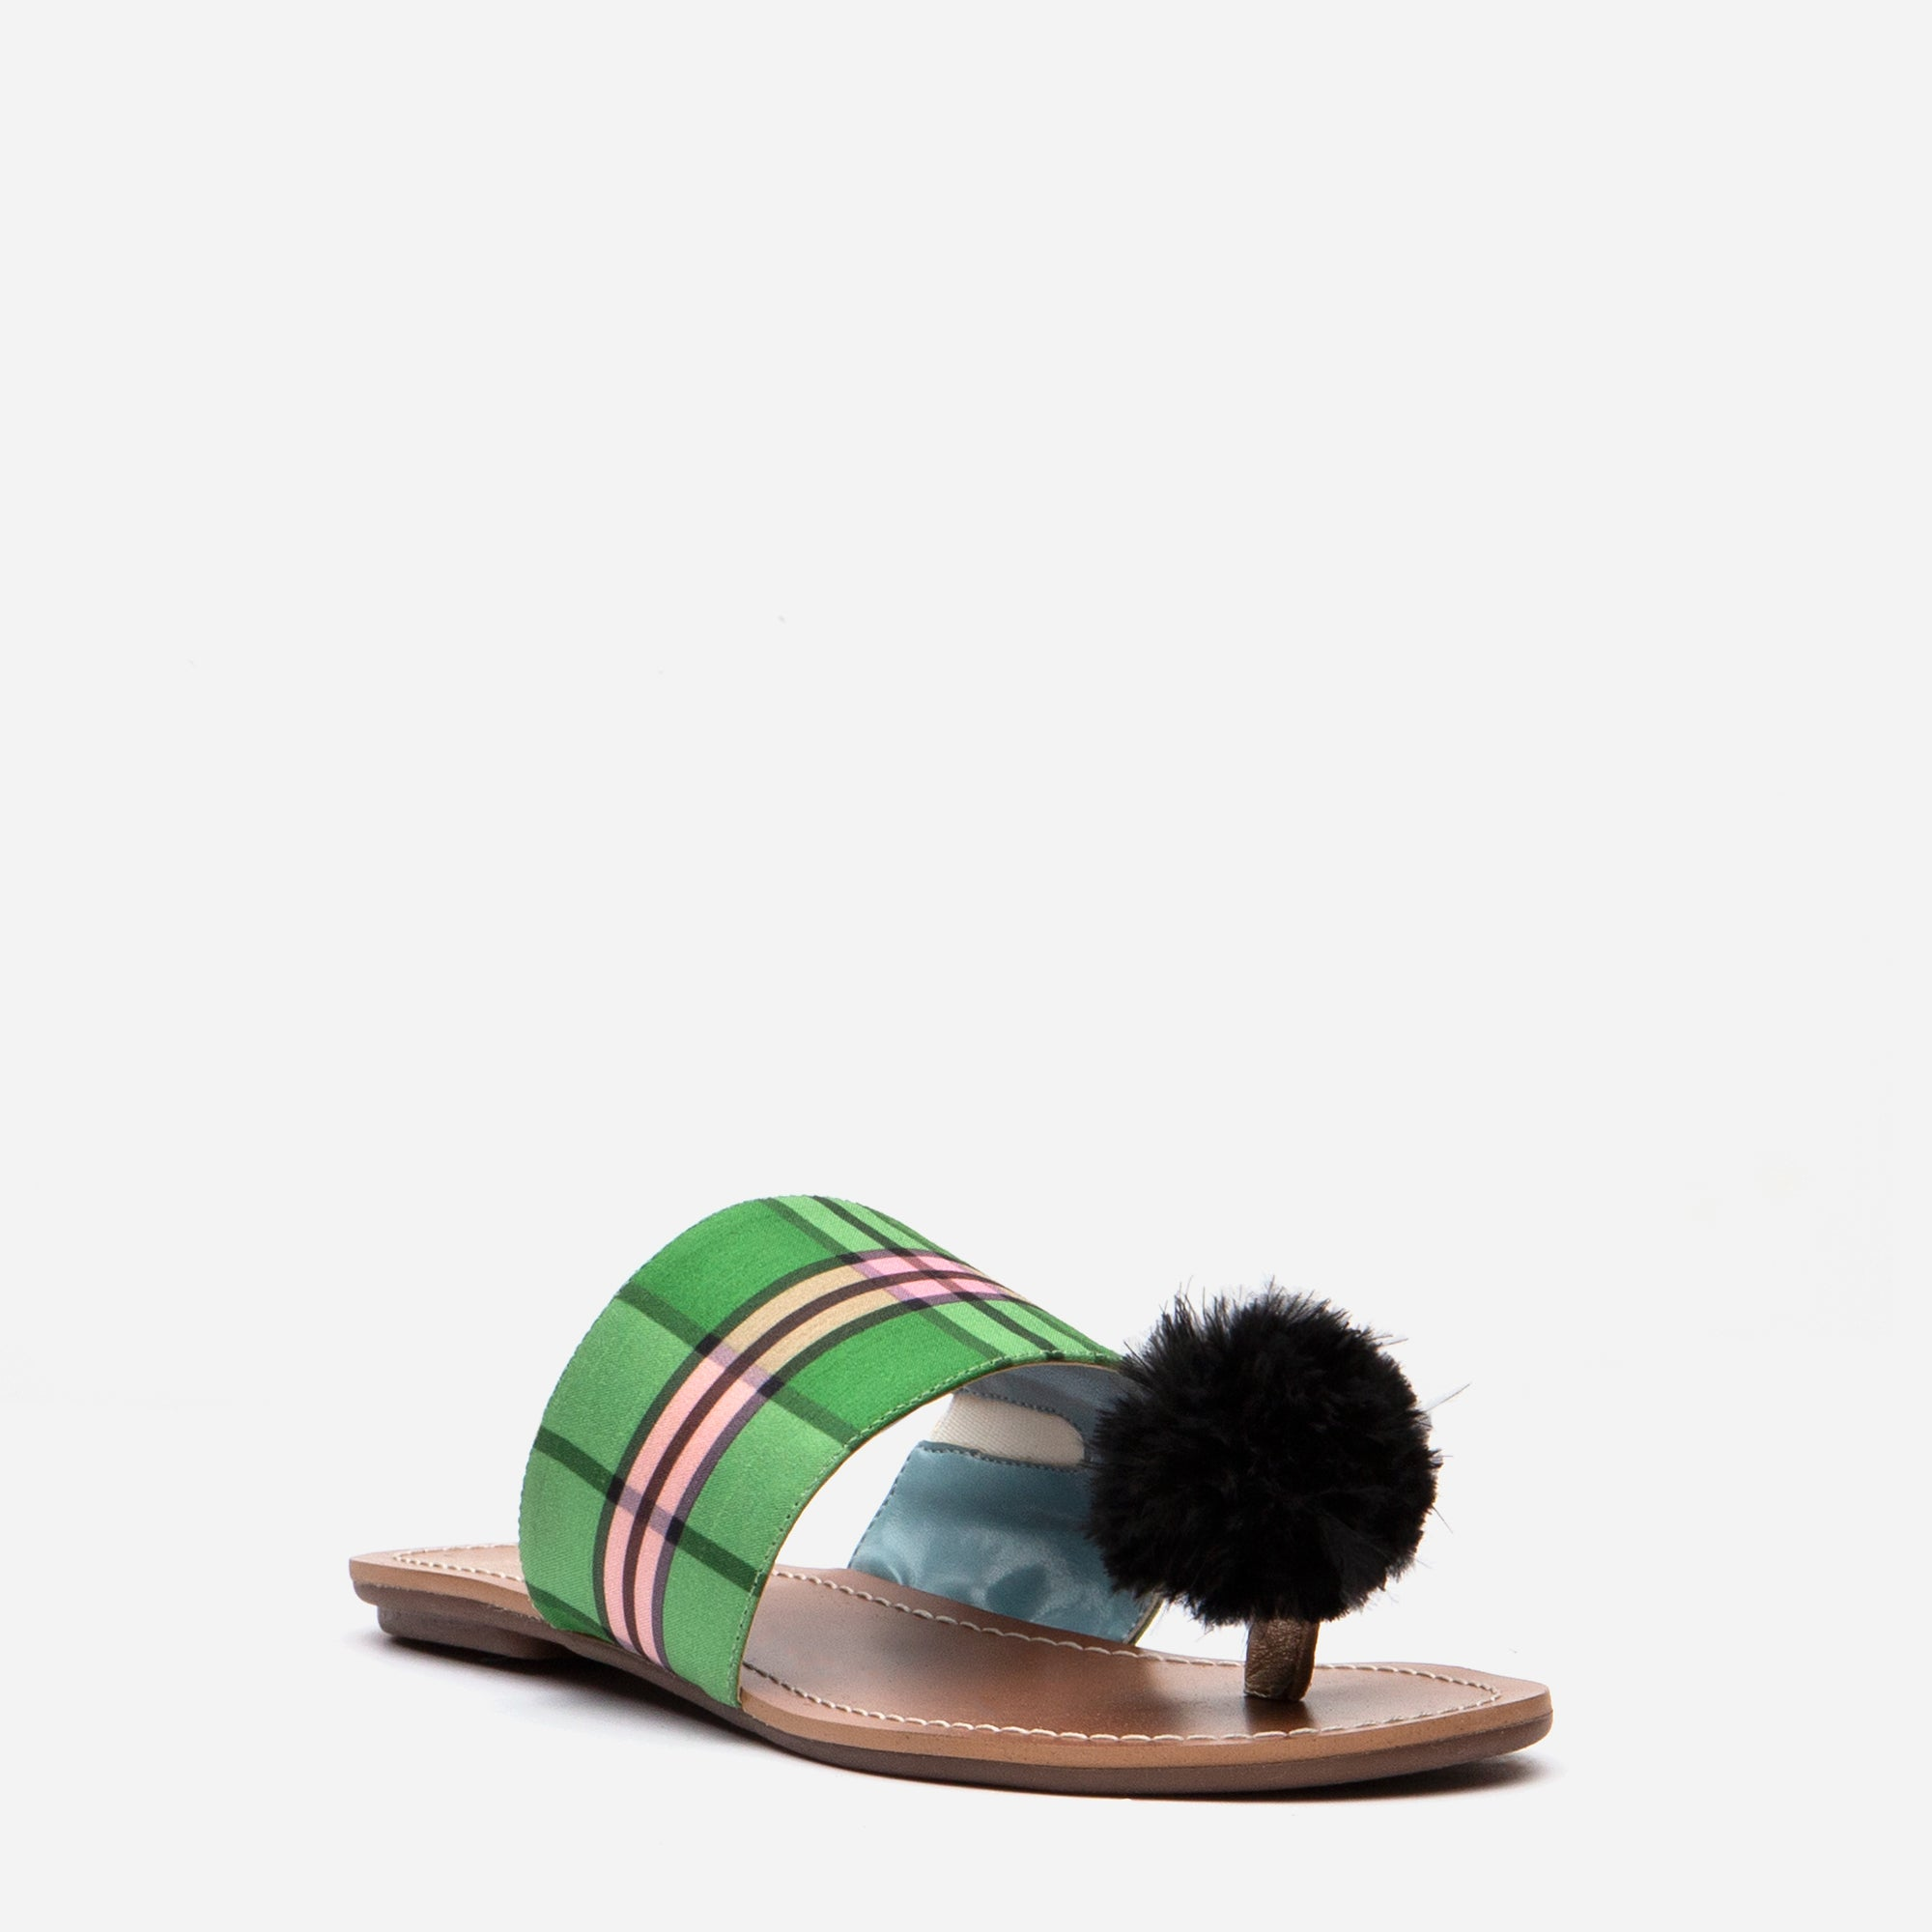 Clementine Pom Pom Sandals Nantucket Plaid